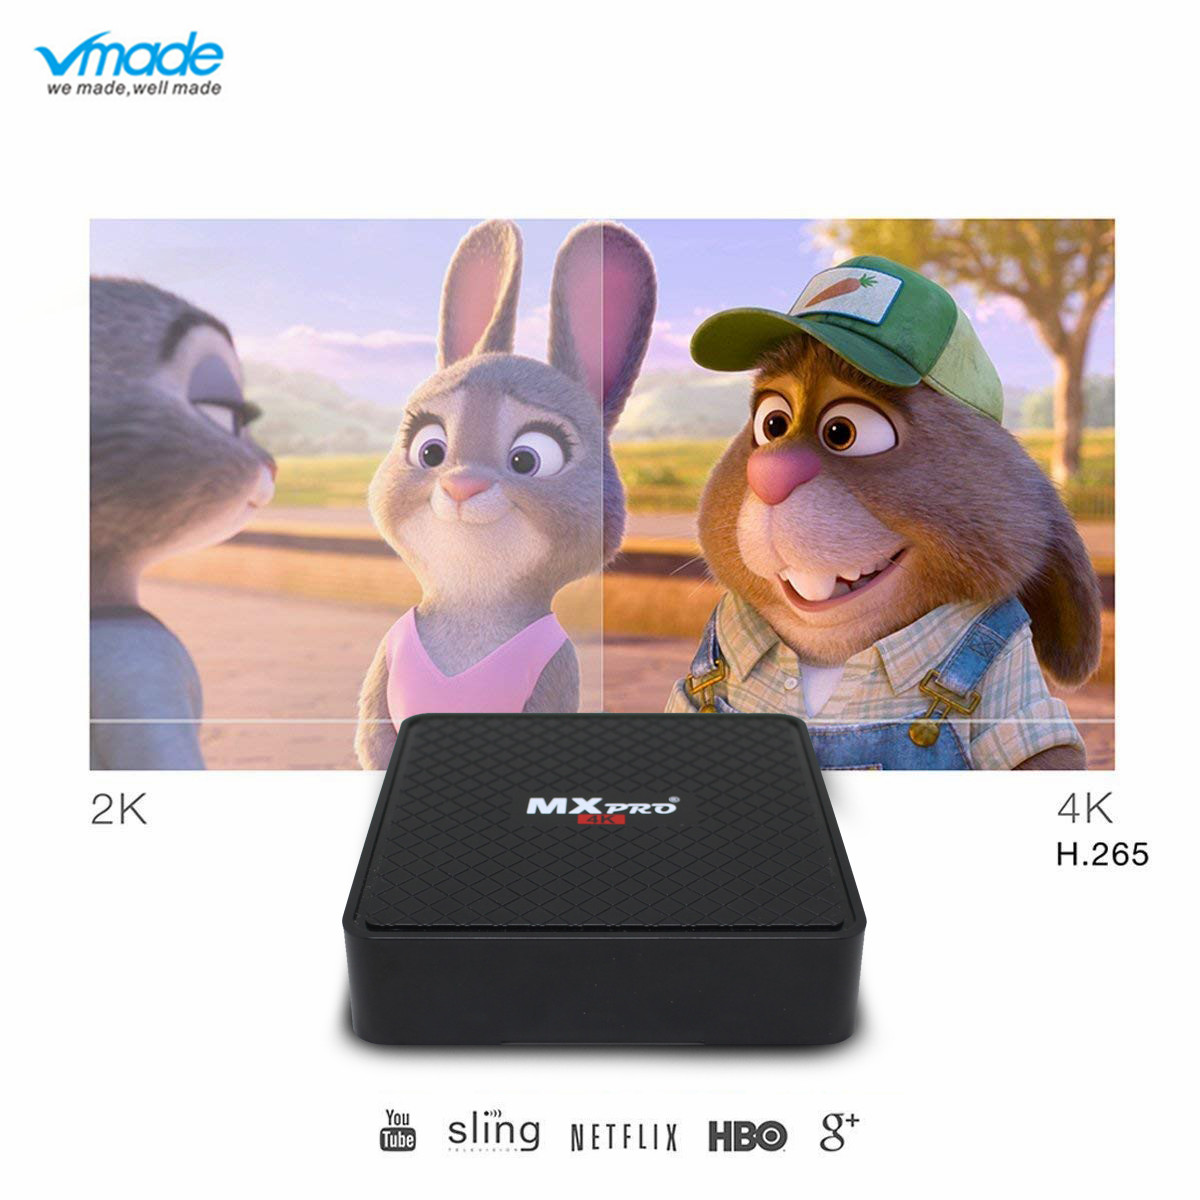 Vmade V96S Mini TV Box Android 7.1 Allwinner H3 Quad Core H.265 HD 1080p 1GB + 8GB Support WIFI Mini Set Top Box TV Media Player-in Set-top Boxes from Consumer Electronics